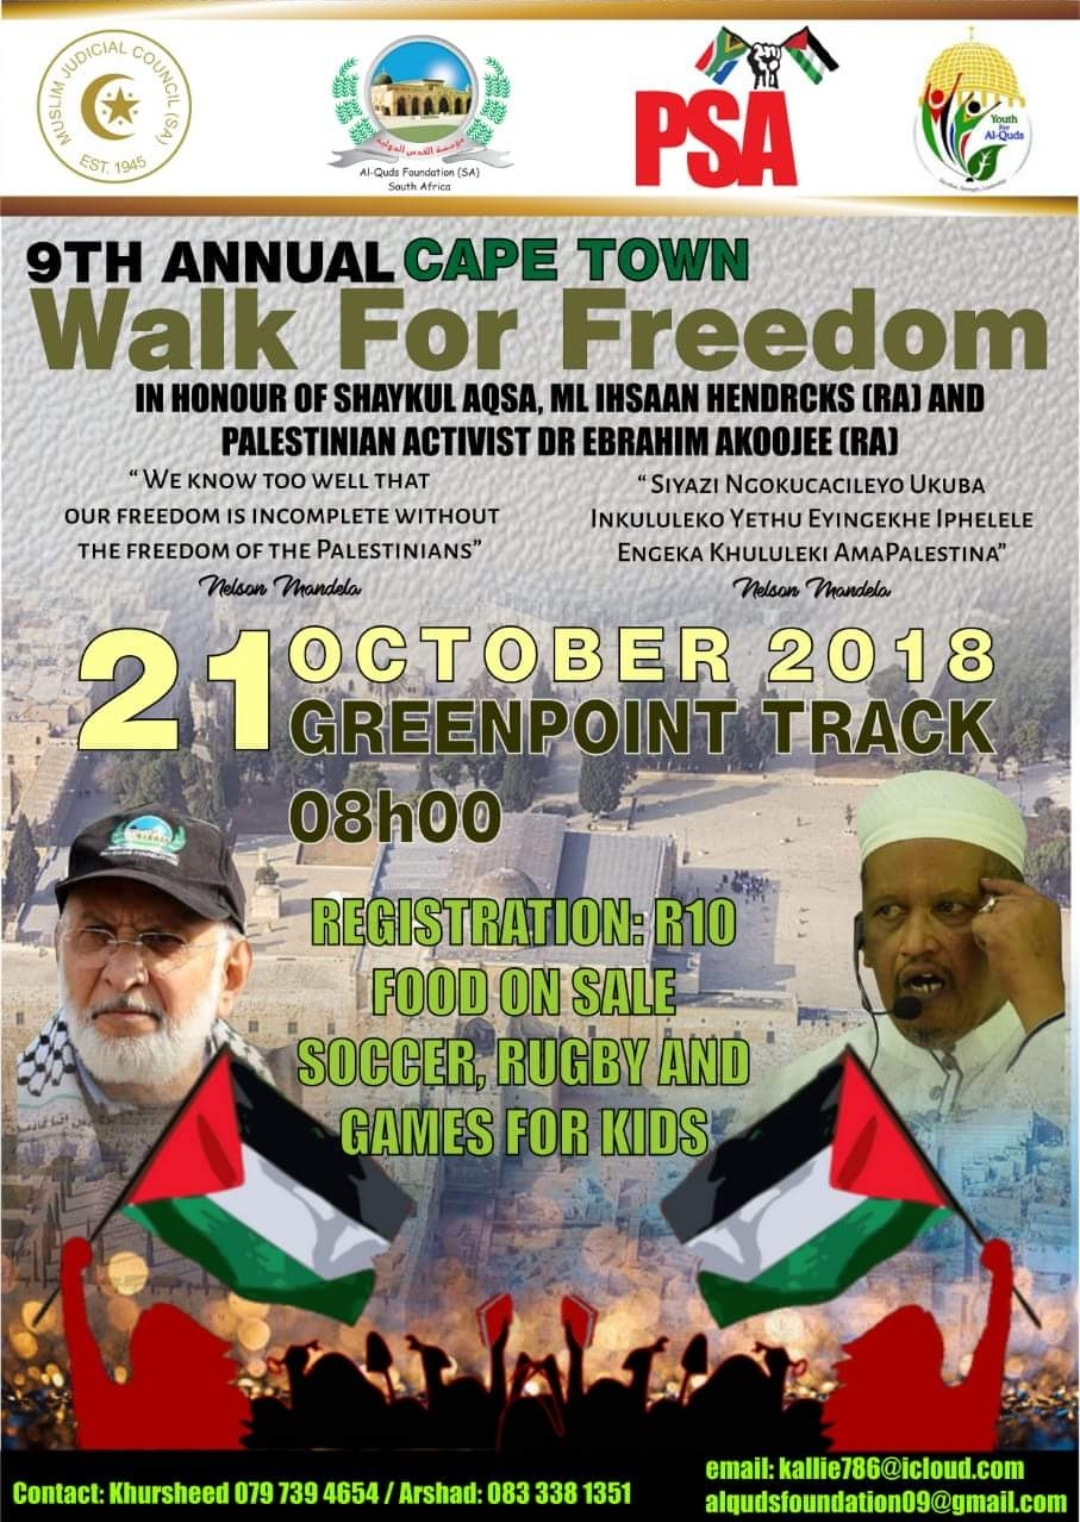 9th cape town walk for freedom honours moulana ihsaan hendricks - Screenshot 20181005 200002 Pages Manager - 9th Cape Town Walk For Freedom honours Moulana Ihsaan Hendricks